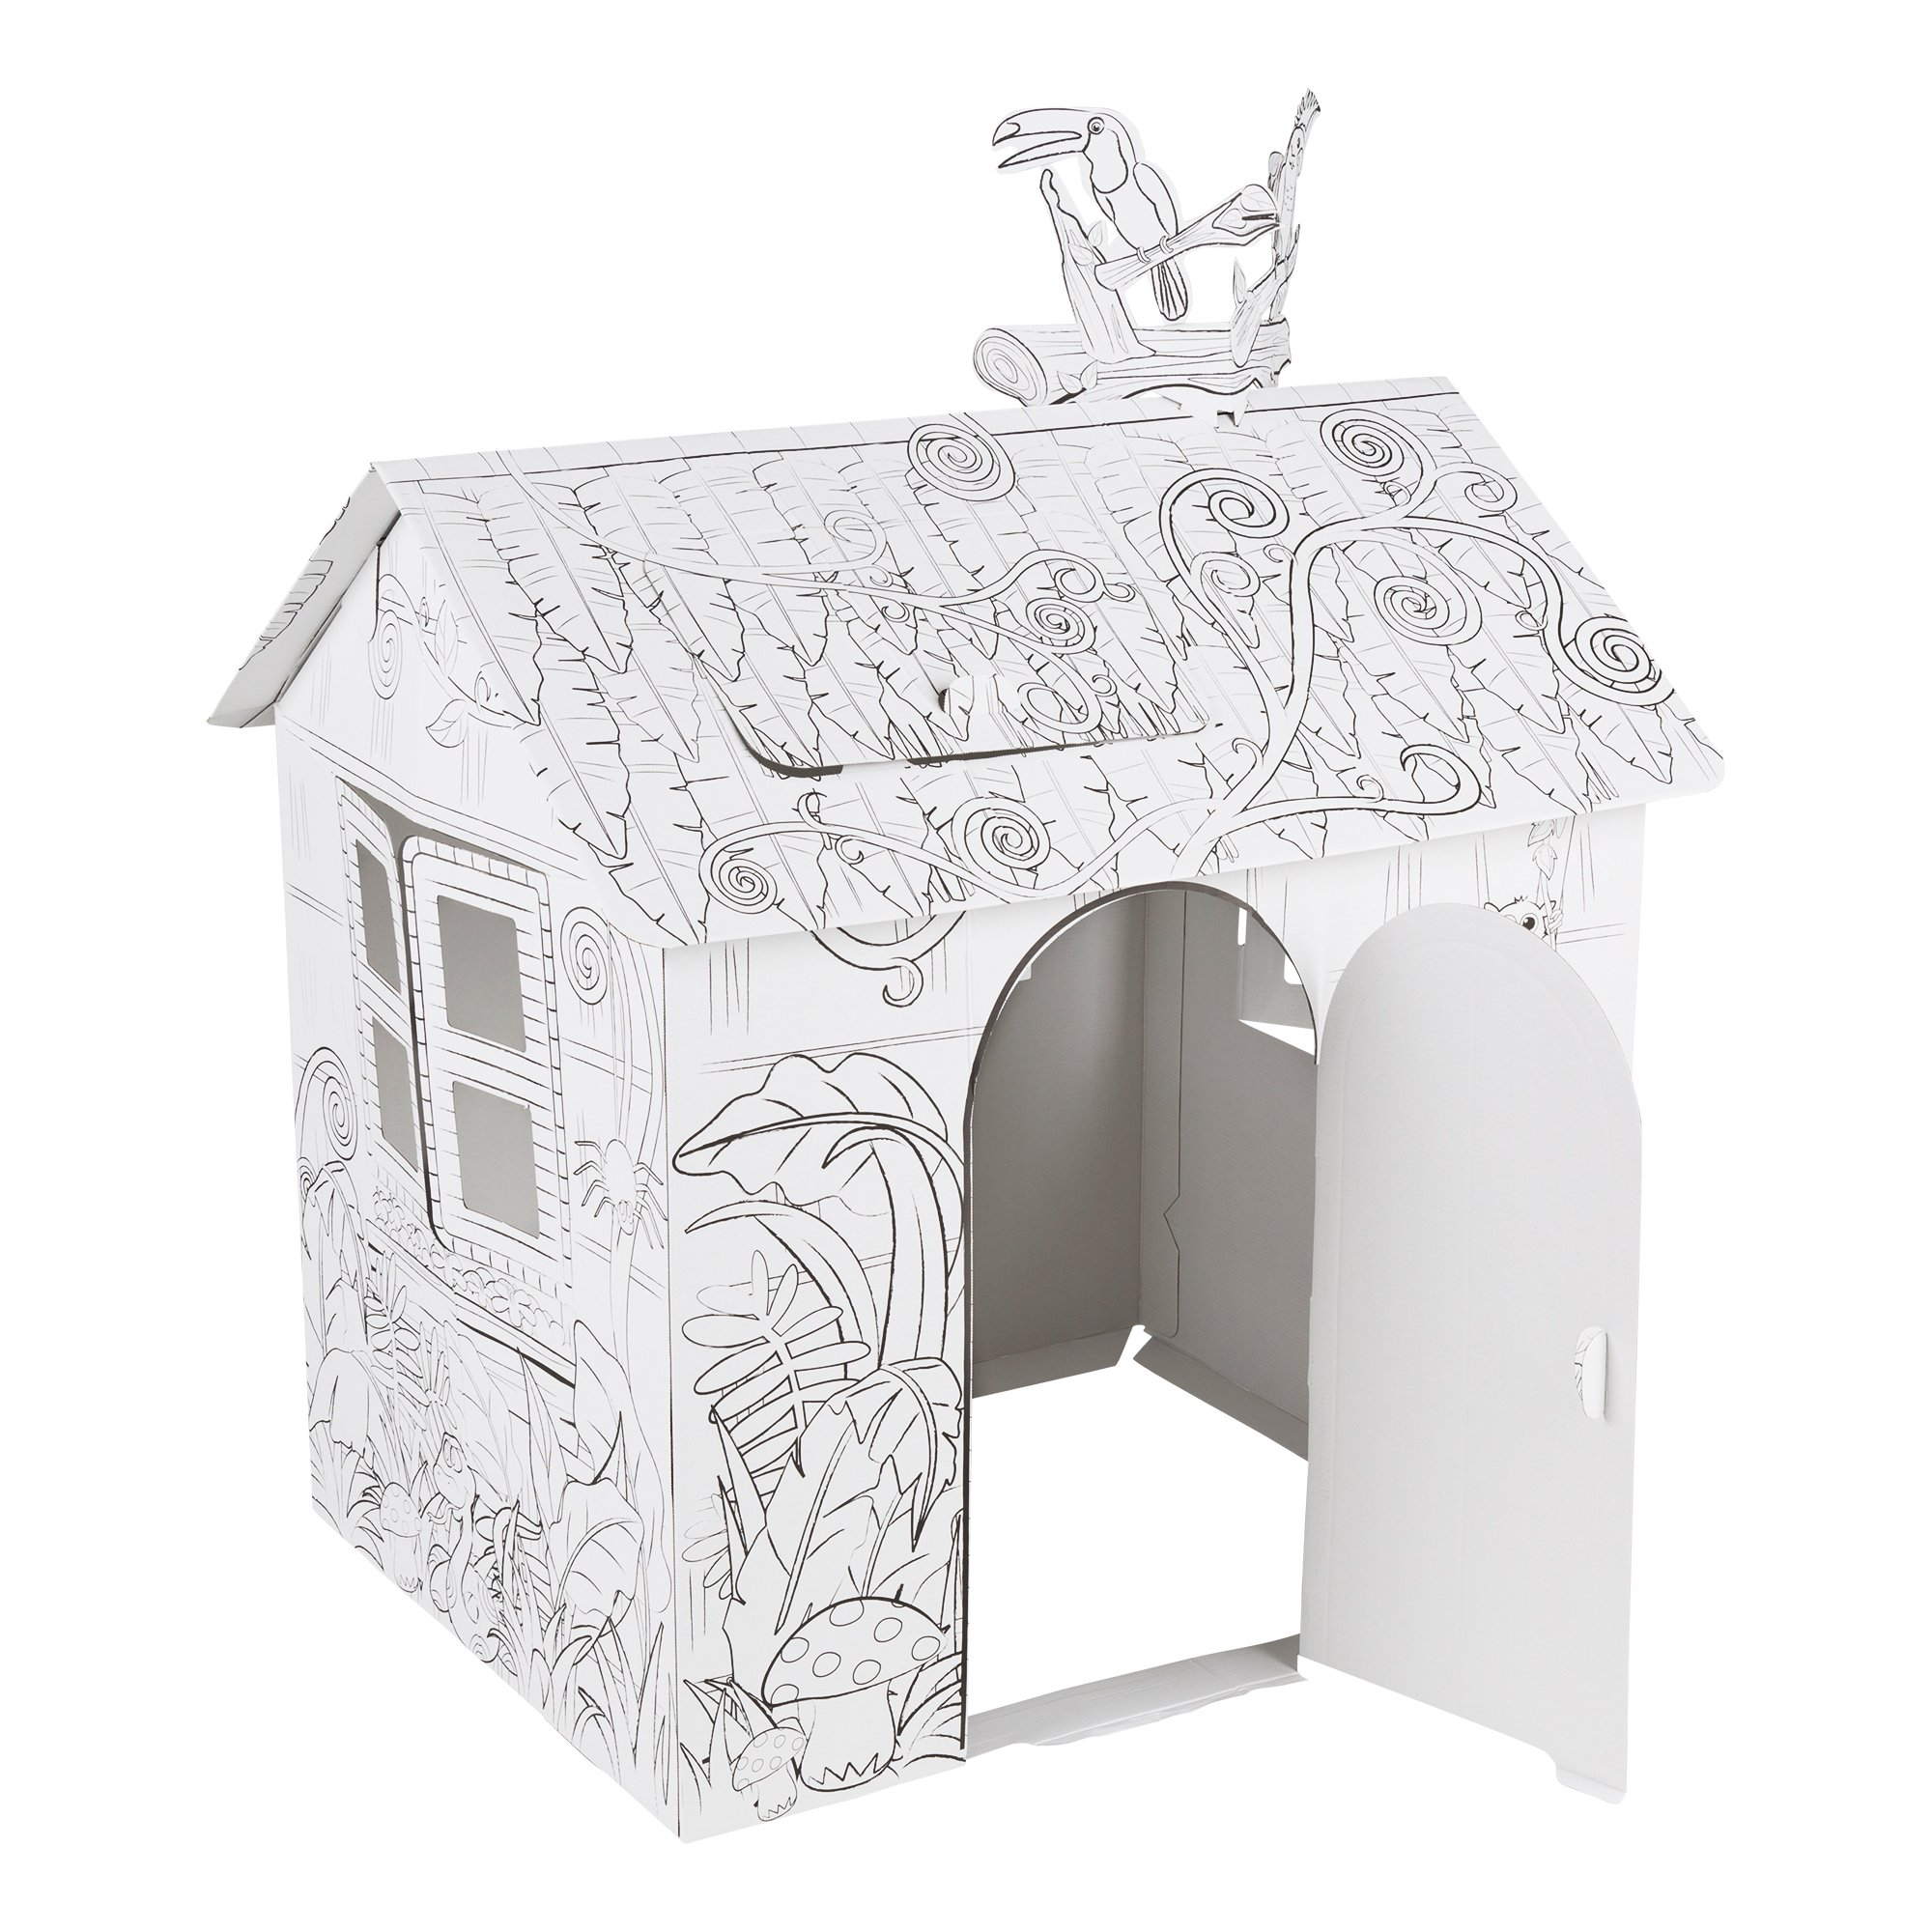 Cheap Cardboard Playhouse, find Cardboard Playhouse deals on ...